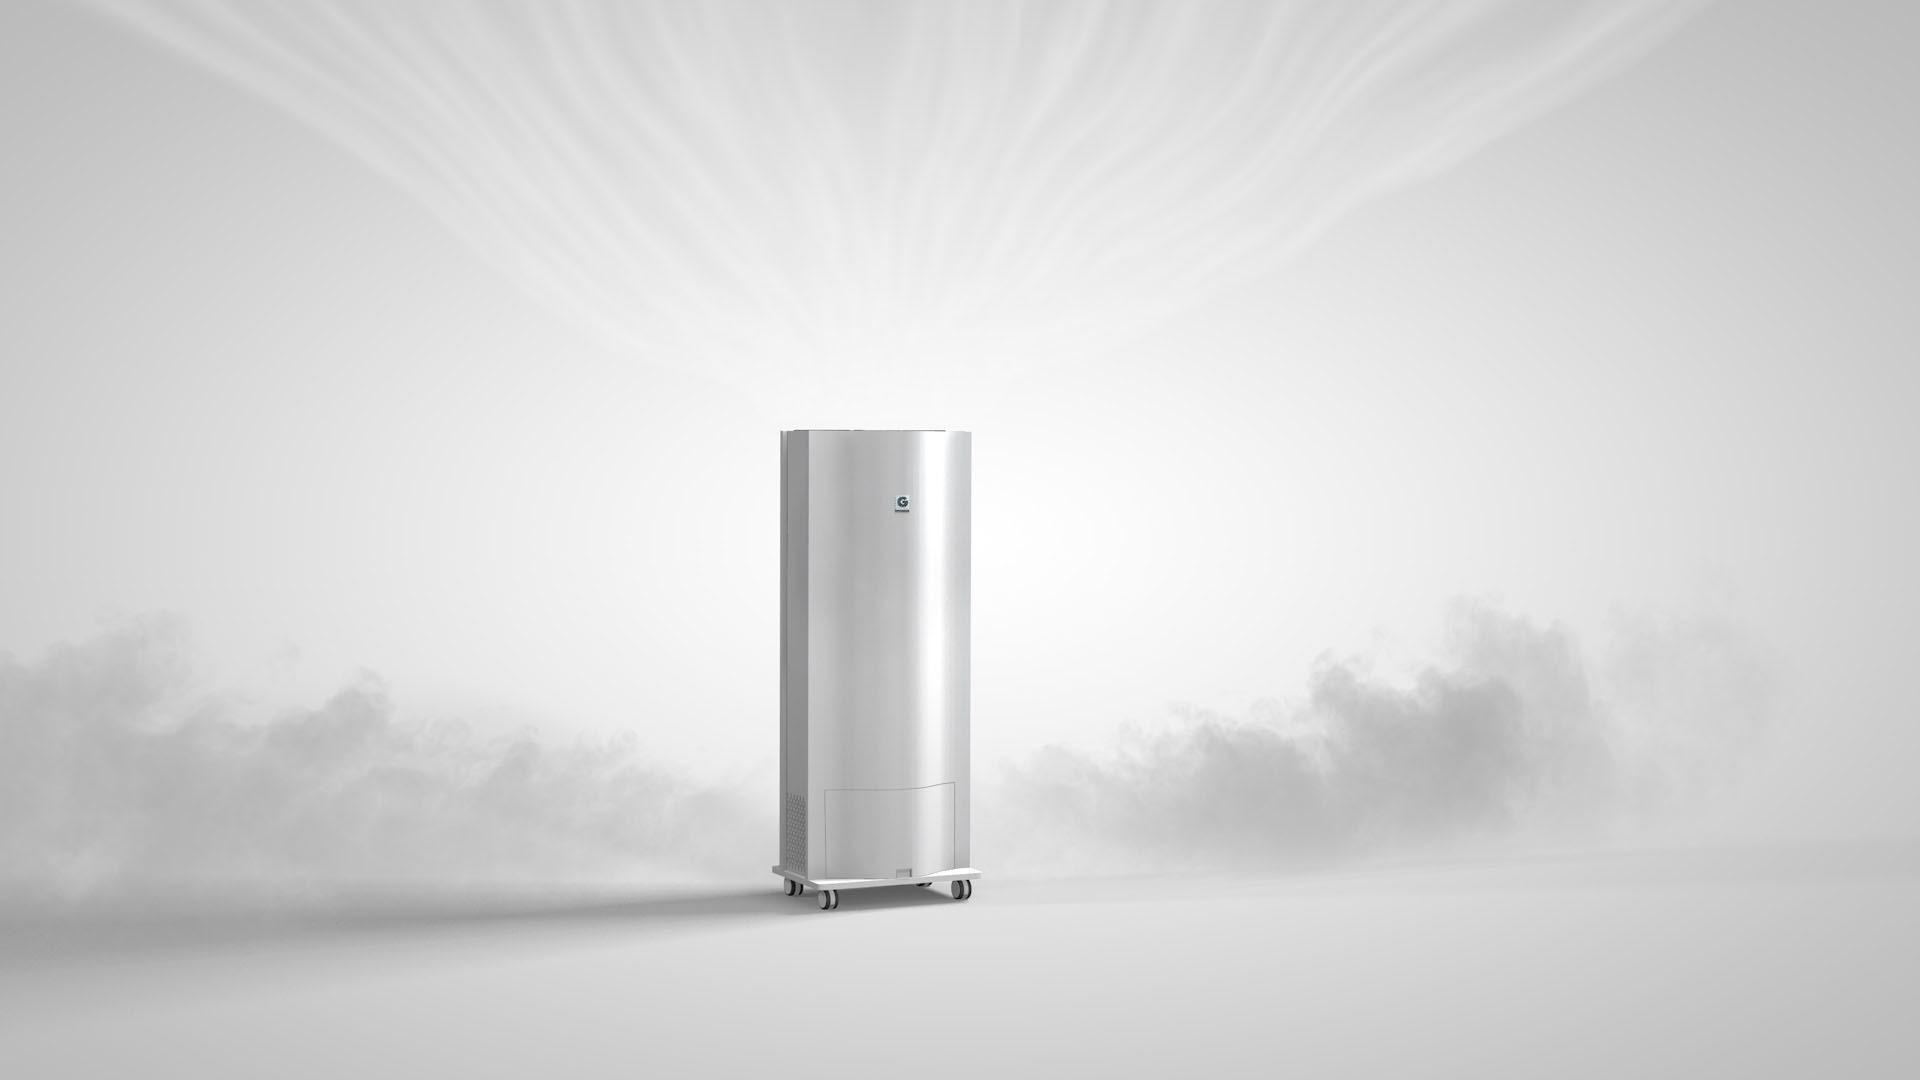 Air Purification Devices Distributed by UK Company, KSG Health, are Proven to be 99.999% Effective Against COVID